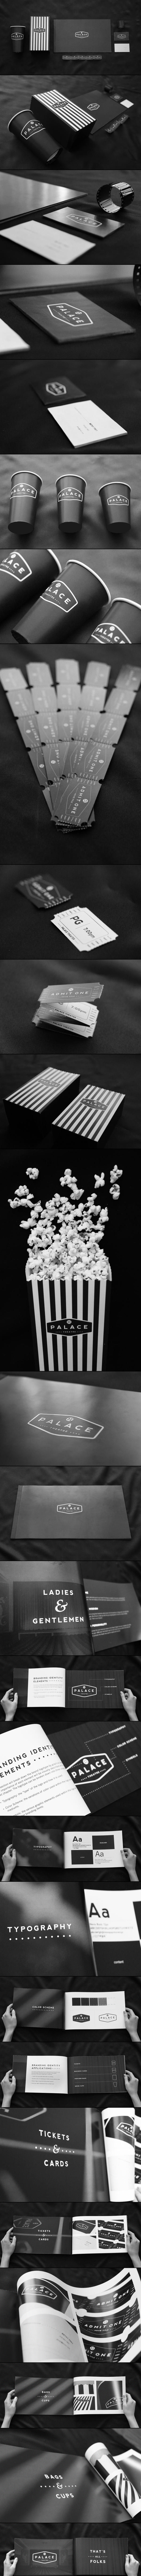 Palace Theater #identity #packaging #branding #marketing PD